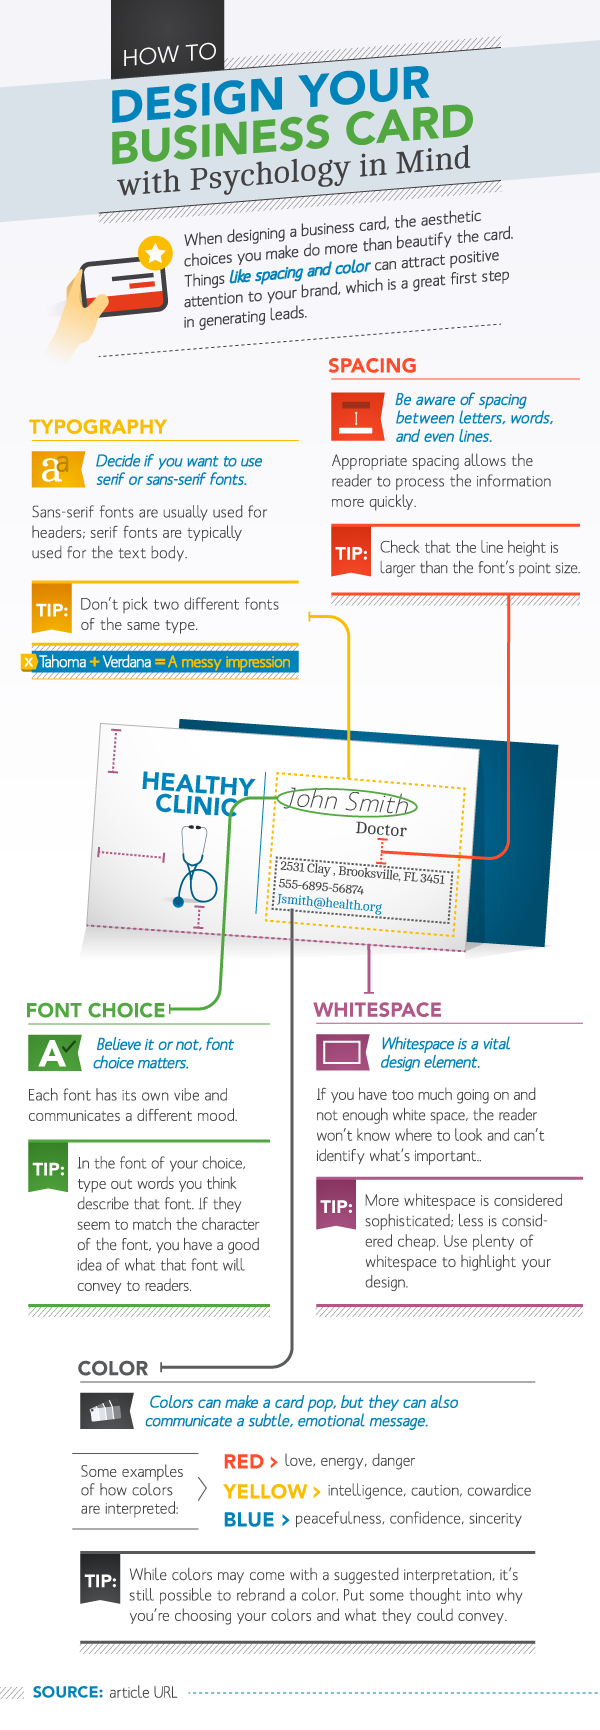 Design Your Business Card With Psychology In Mind | Infographic #Design